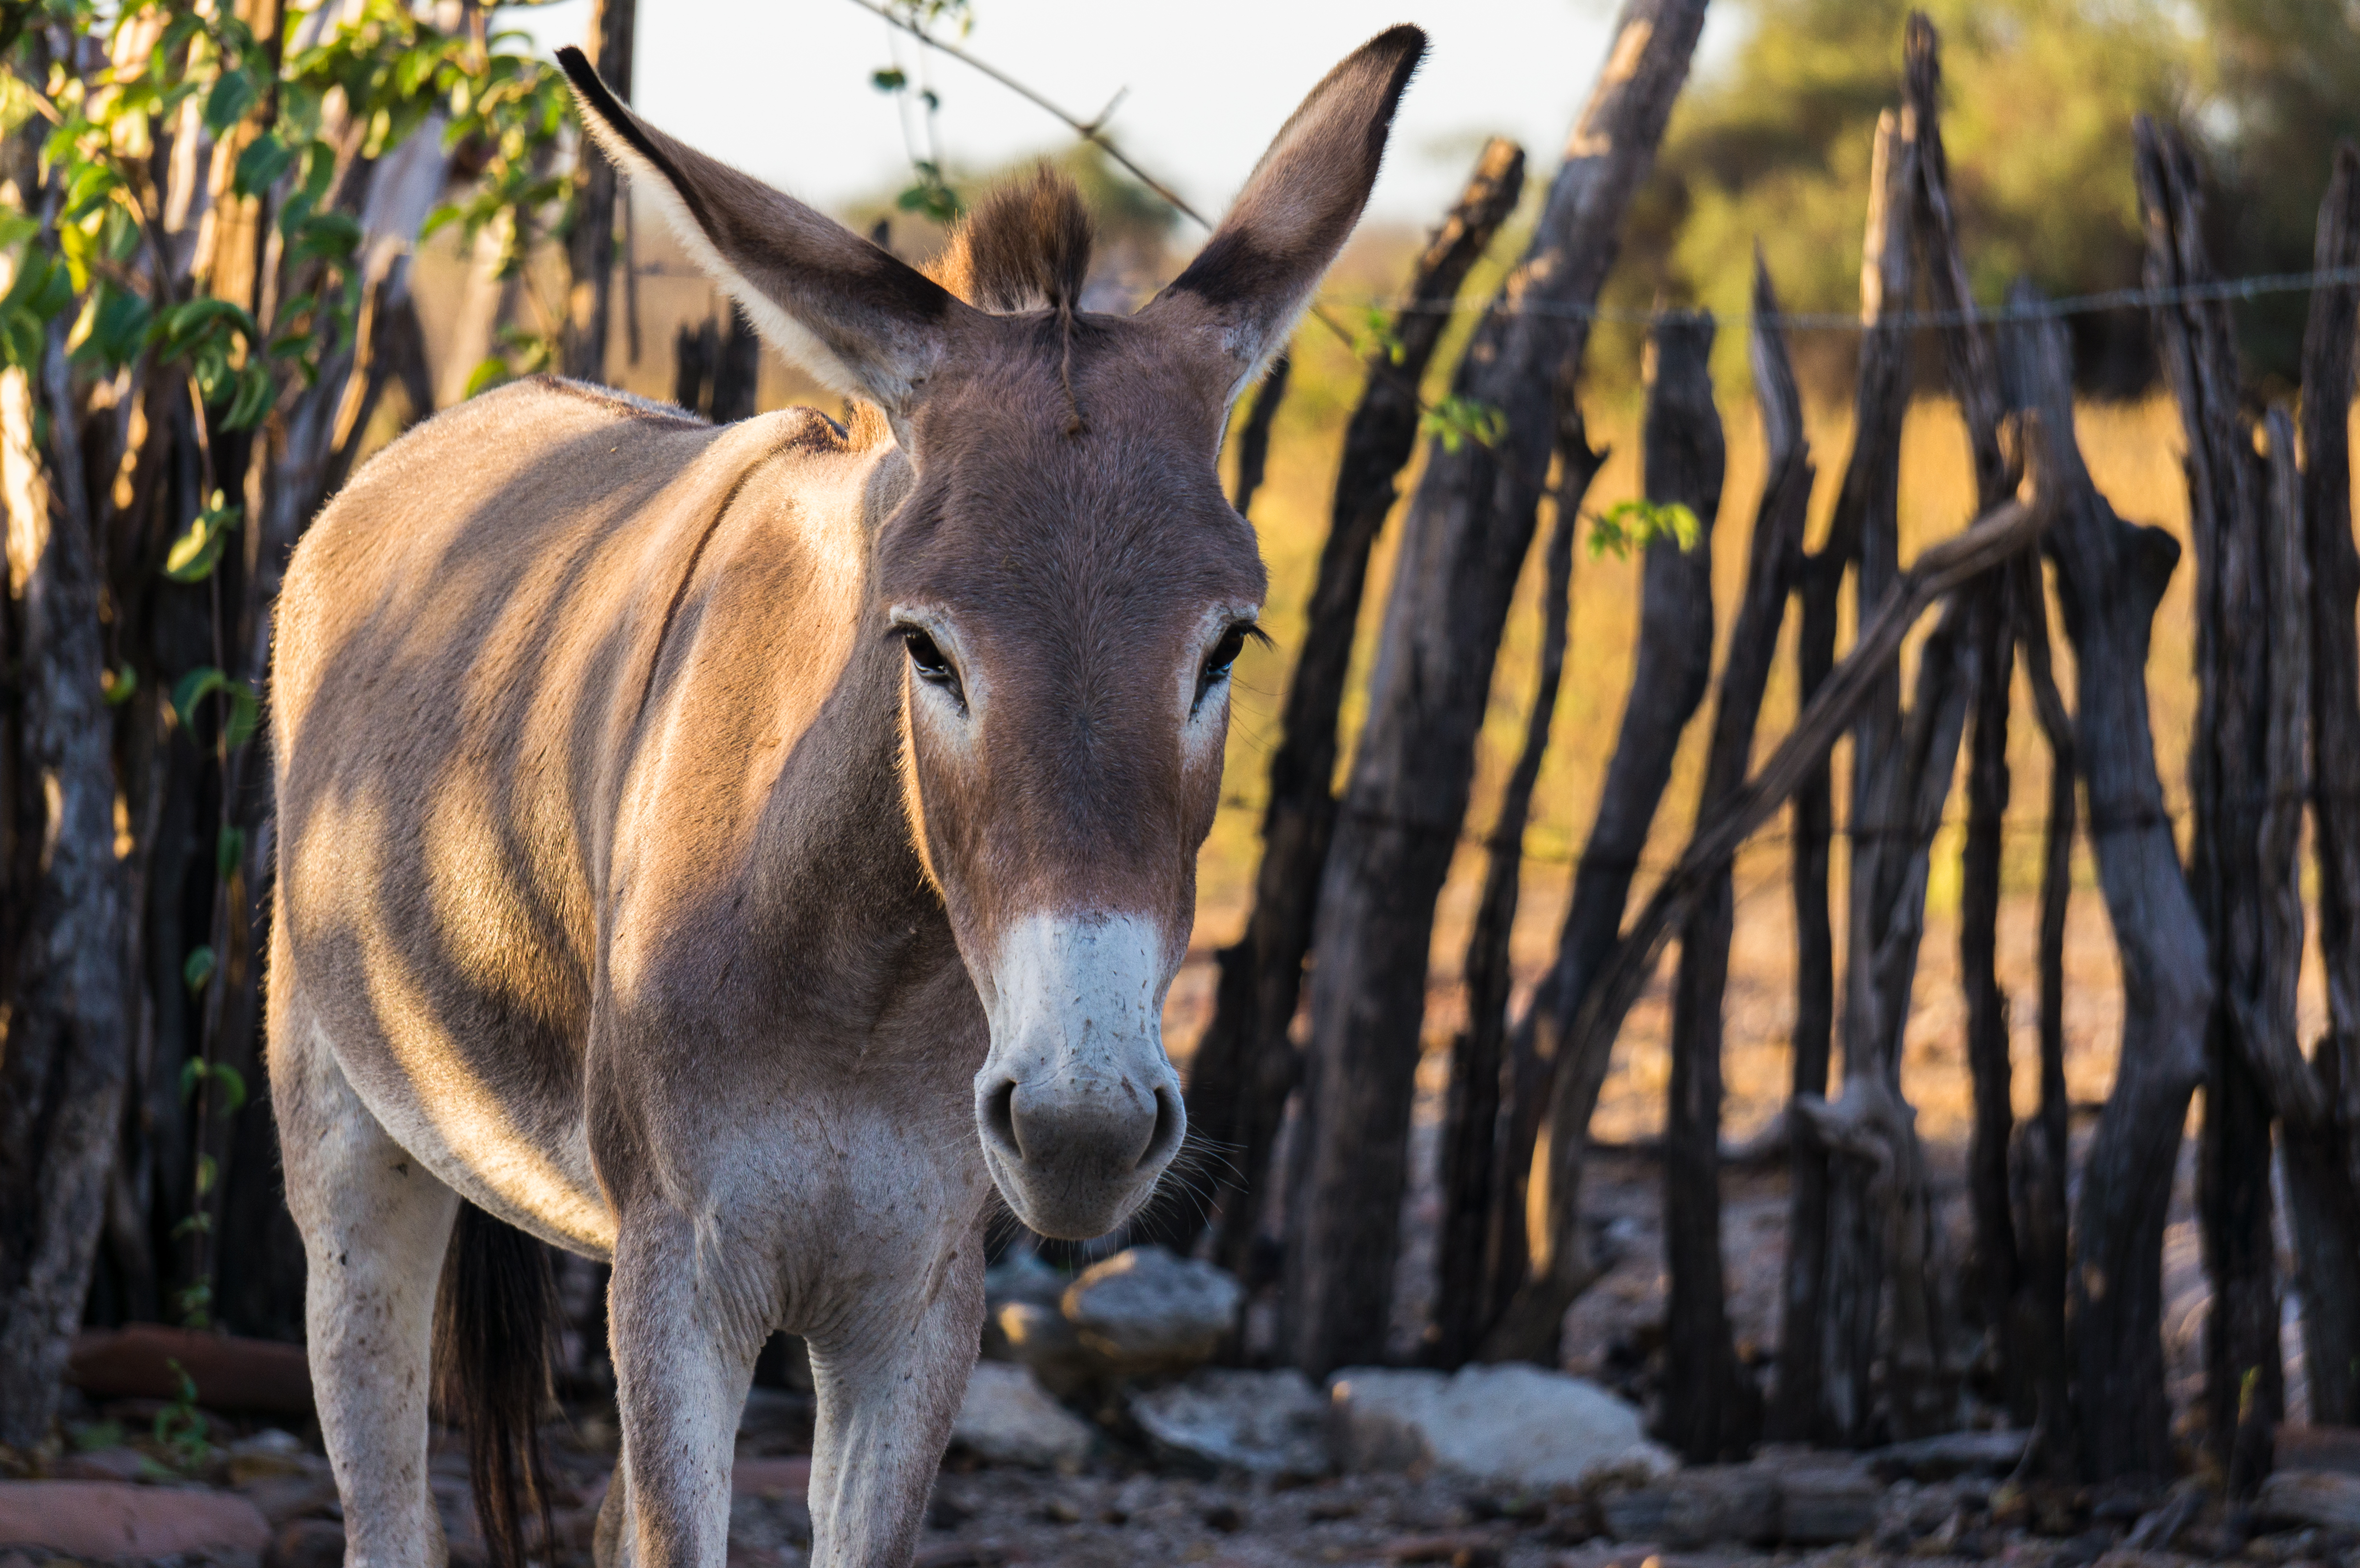 A donkey posing for a photo